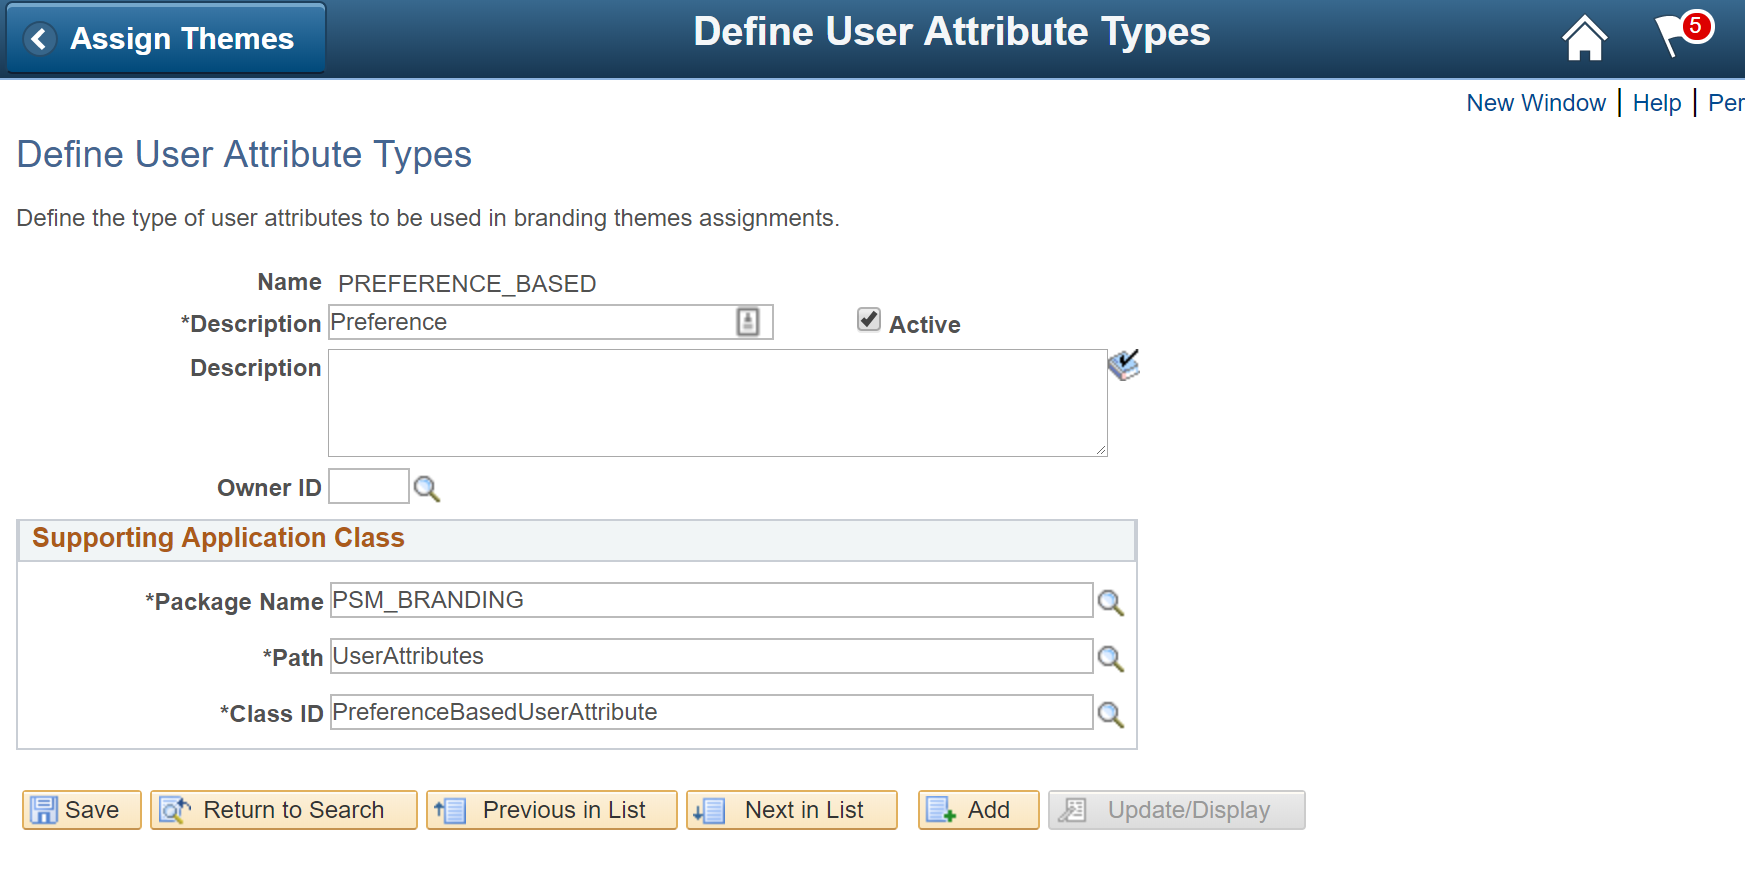 Define User Attribute